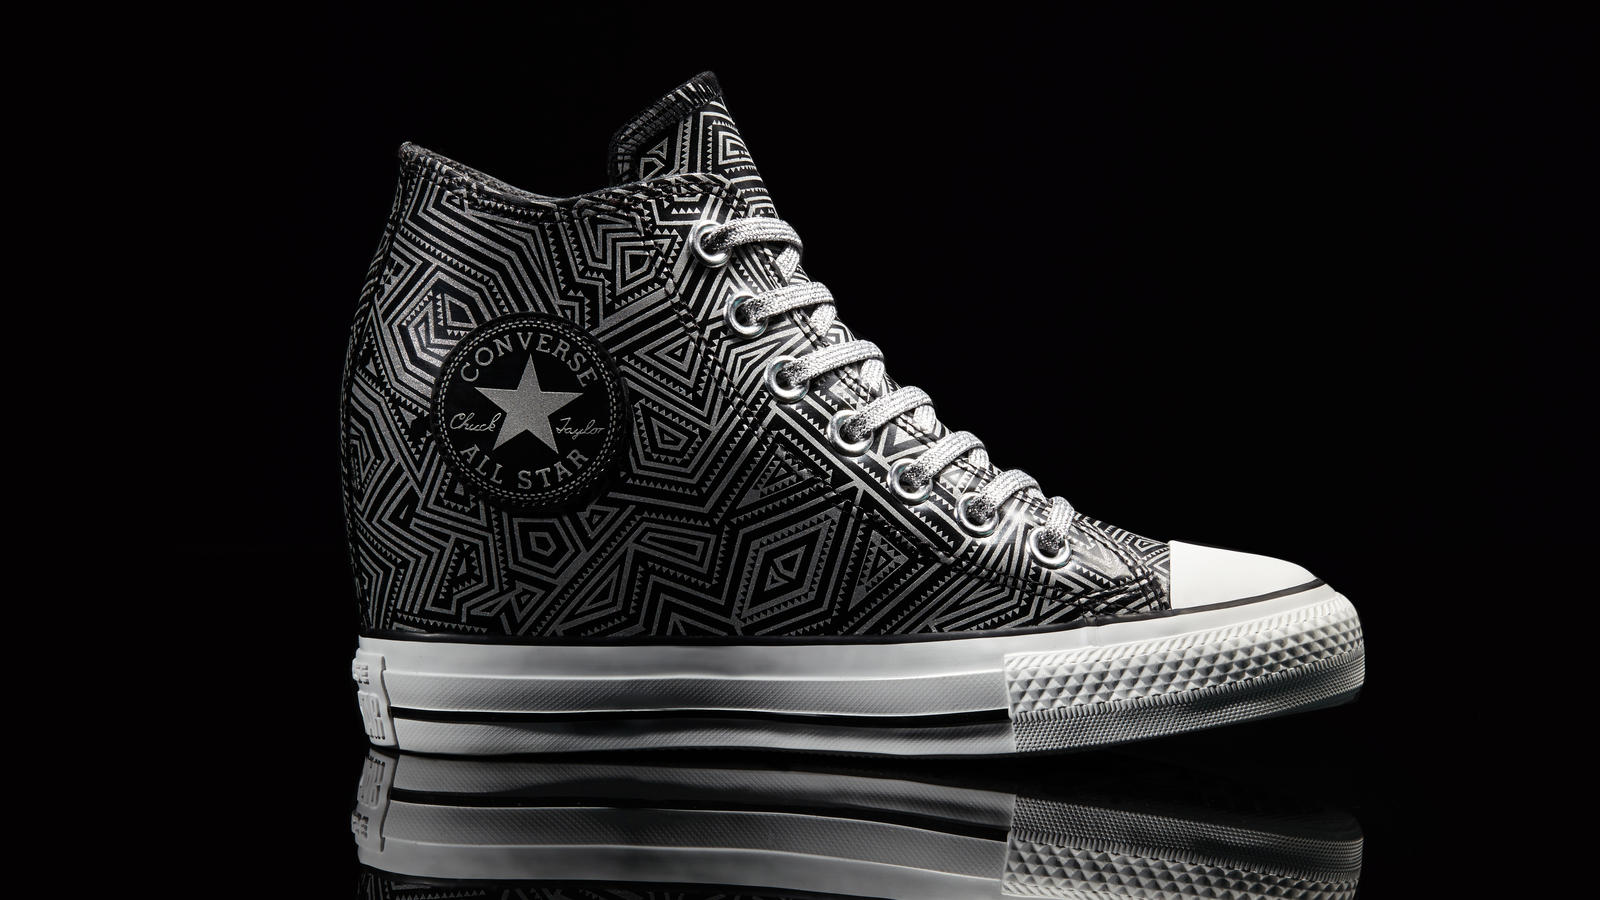 fd4a8e2ac07a CONVERSE DEBUTS THE 2015 CHUCK TAYLOR ALL STAR LUX RUBBER COLLECTION ...